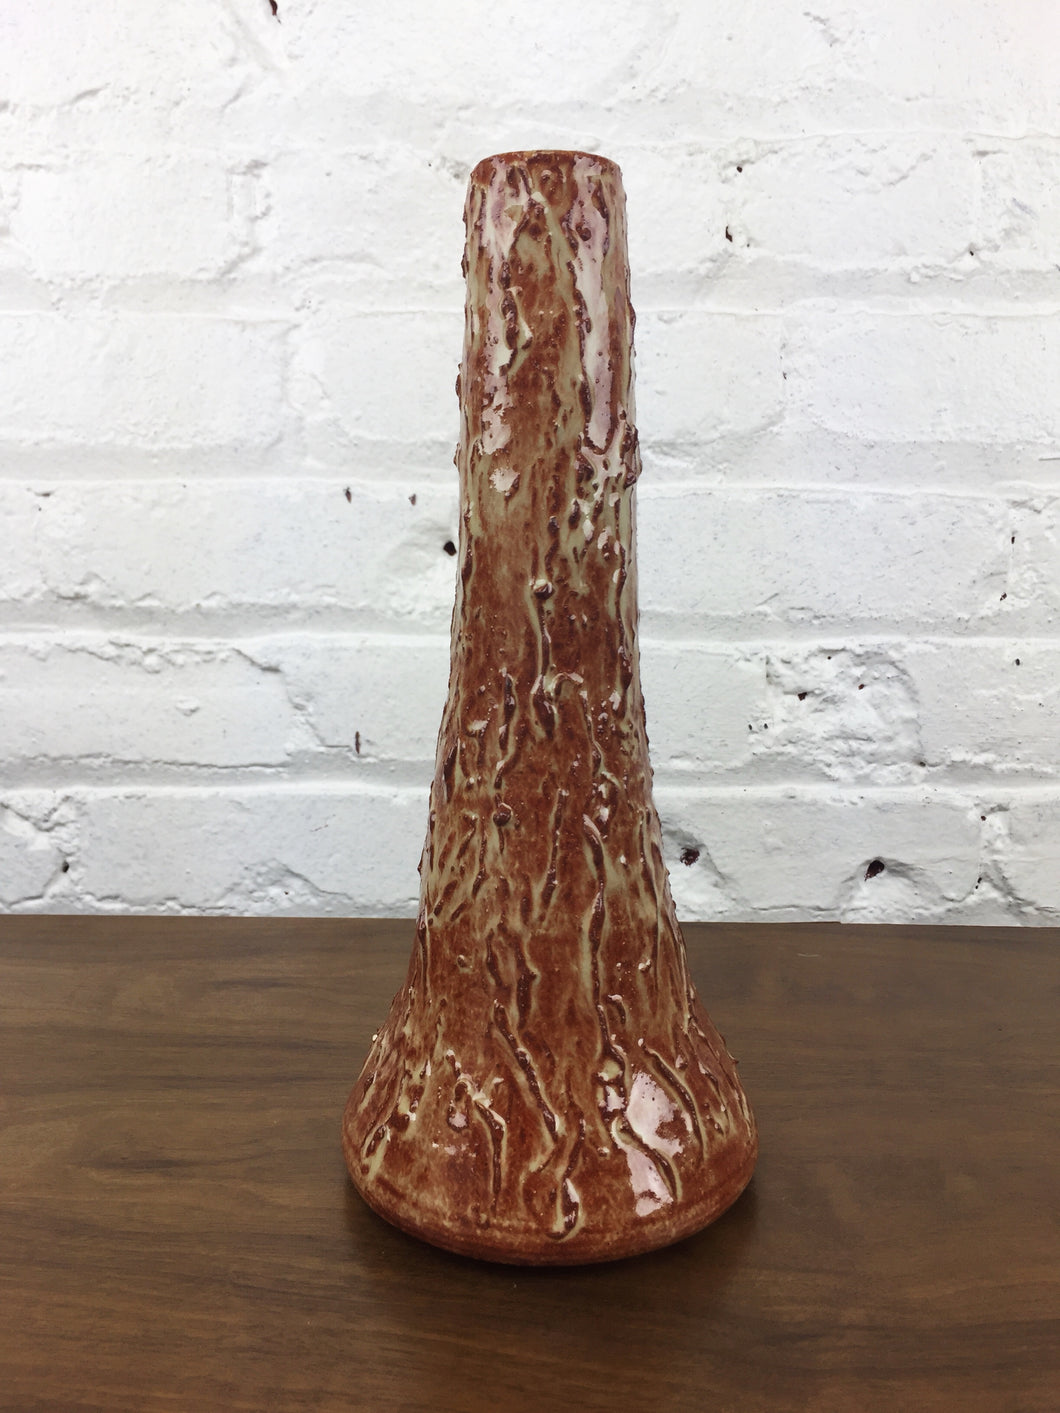 Abstract Texture Ceramic Tall Slender Vase Orange & Green Gloss Glaze